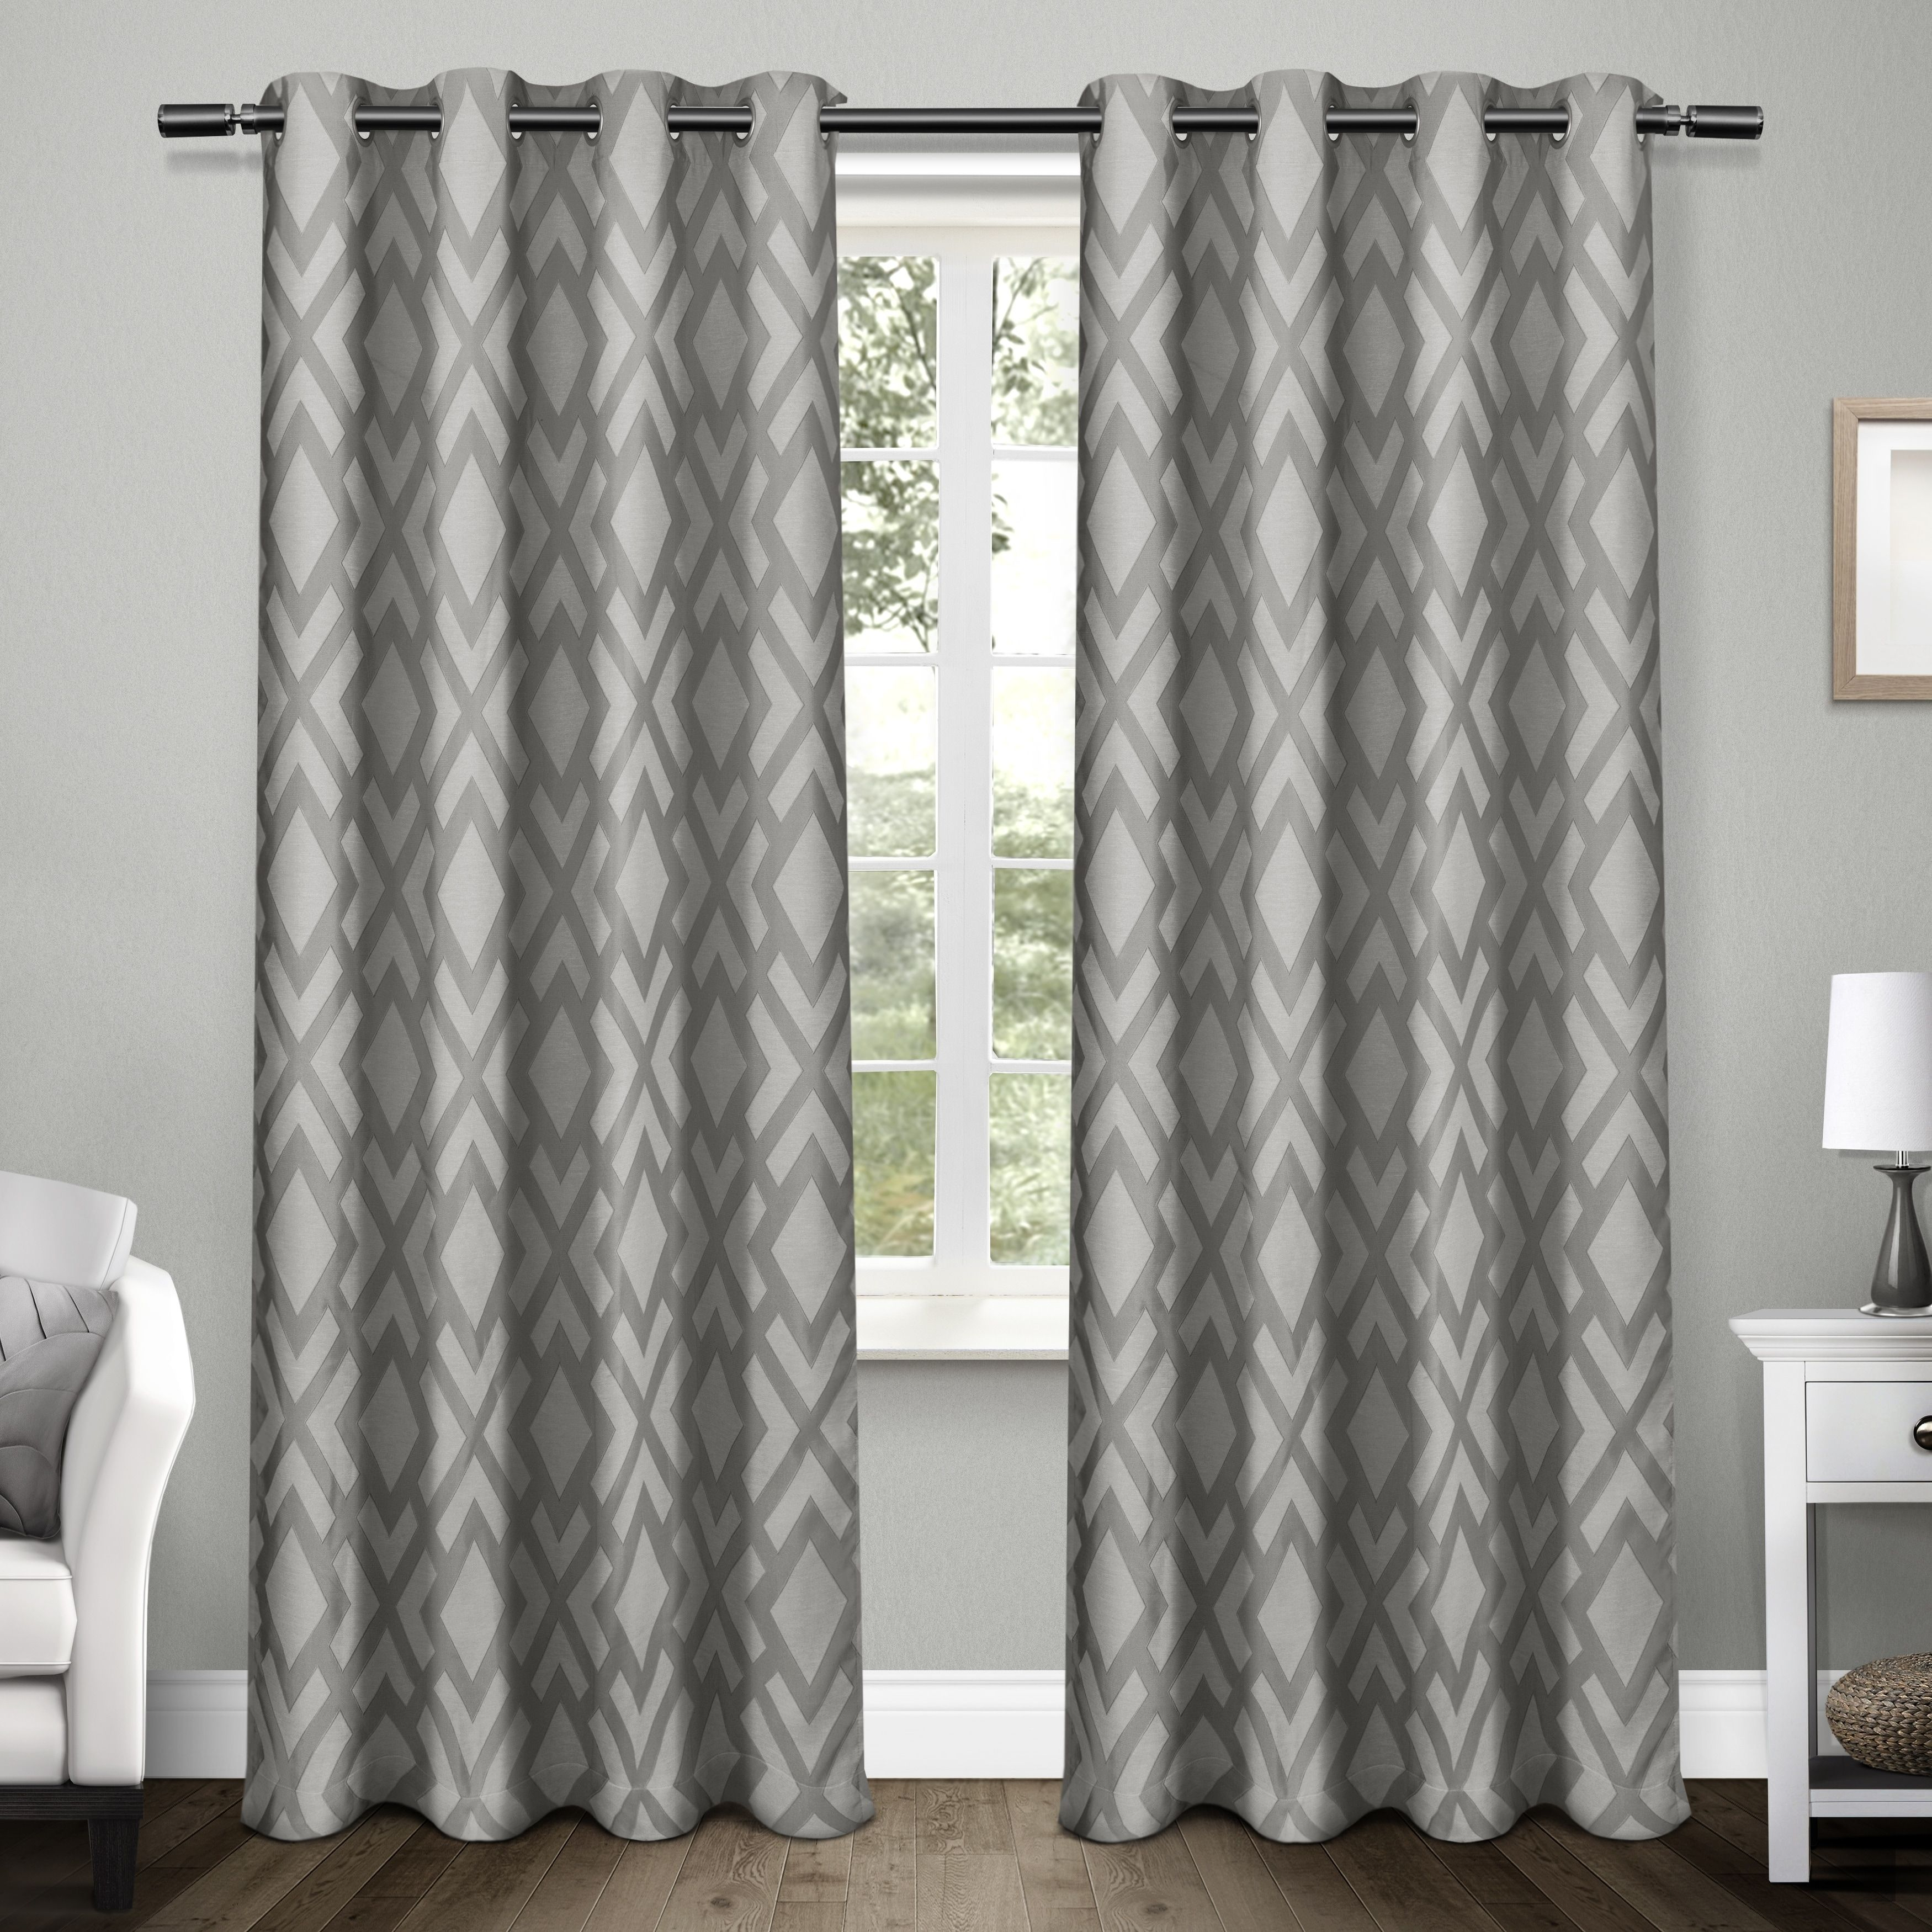 Overstock Com Online Shopping Bedding Furniture Electronics Jewelry Clothing More Grommet Top Curtains Home Curtains Drapes Curtains